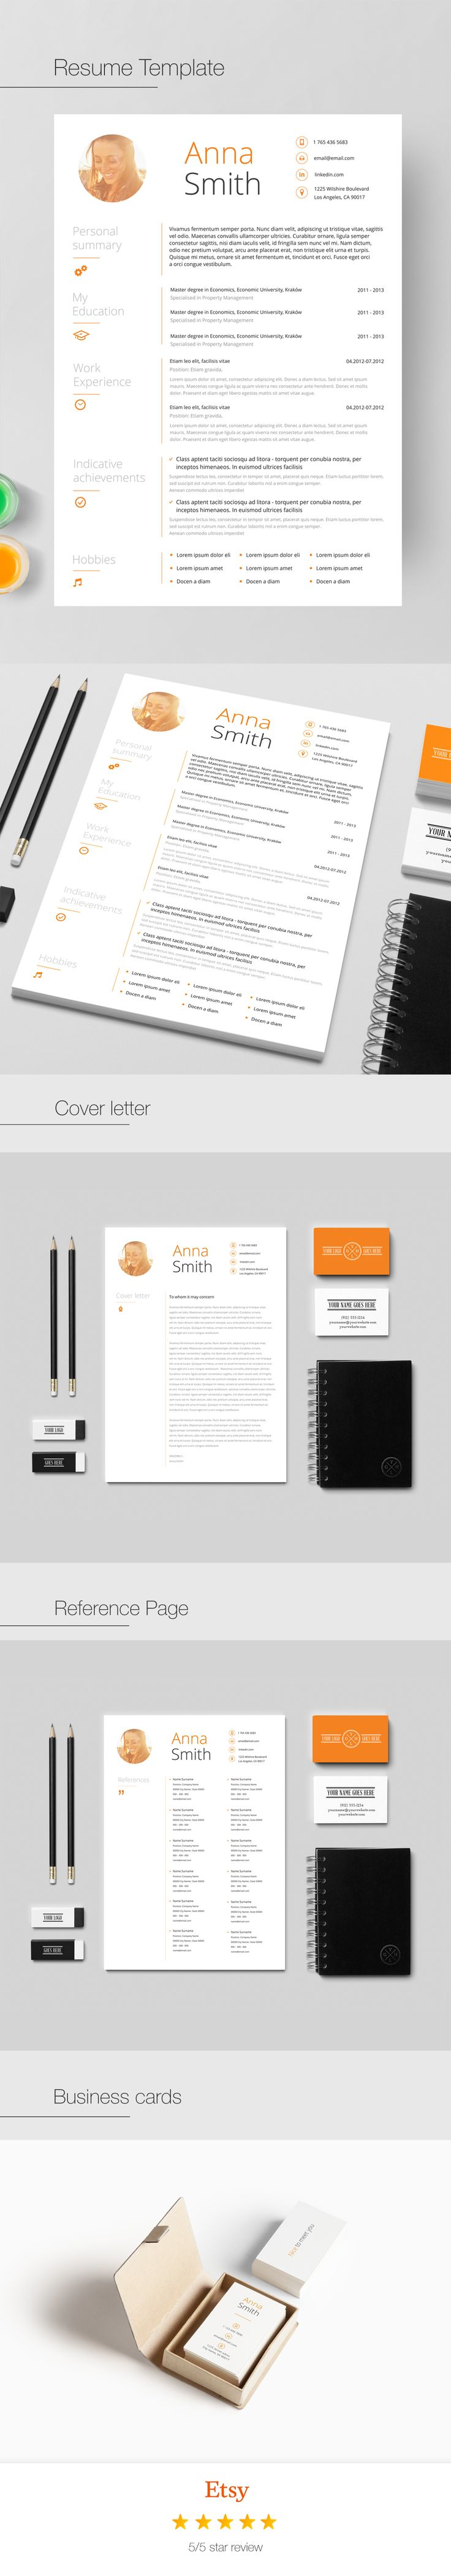 49 best images about resume templates on pinterest business